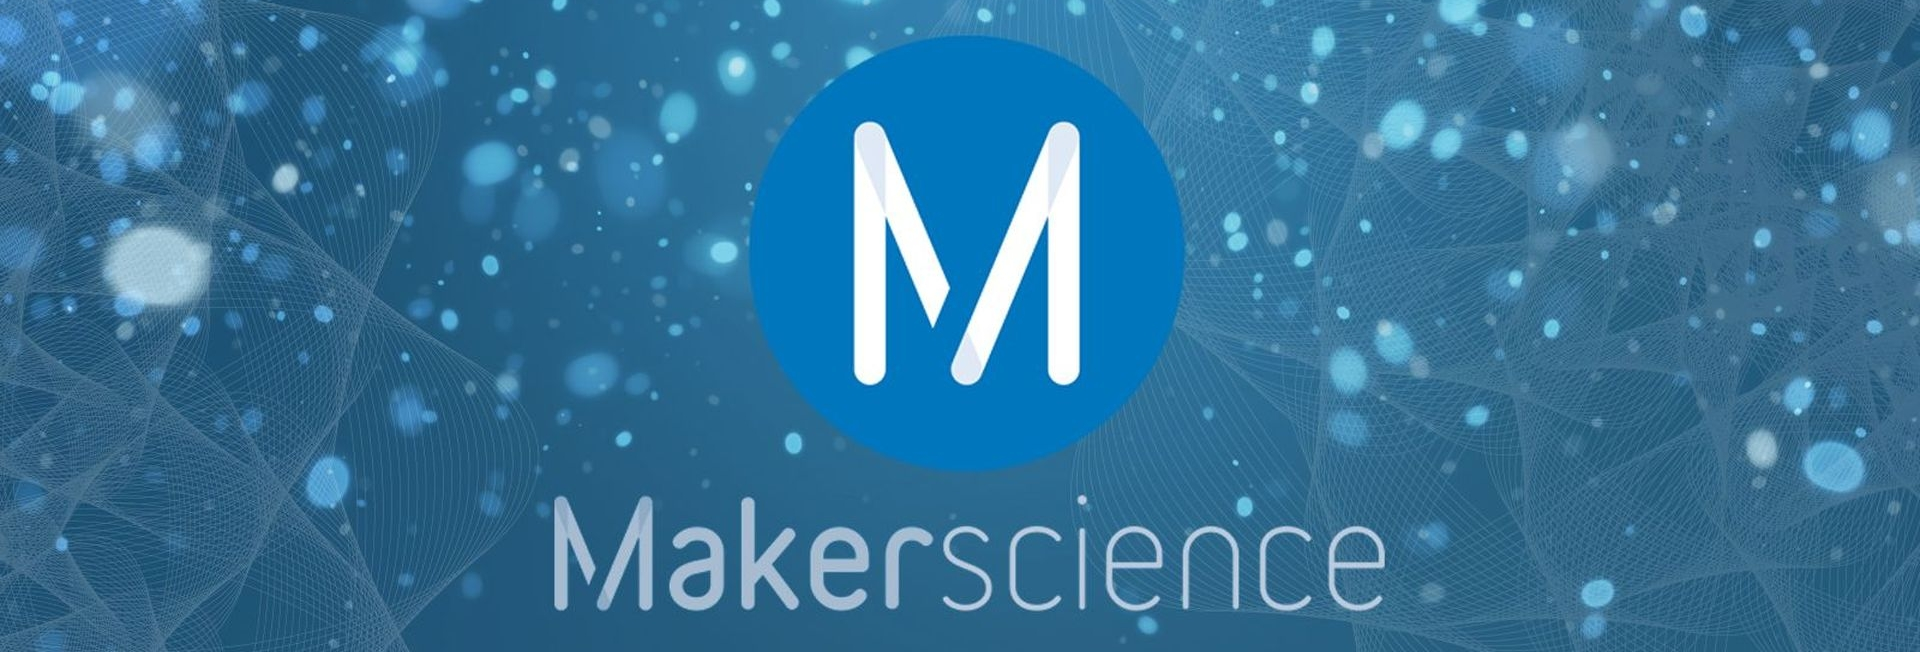 Makerscience